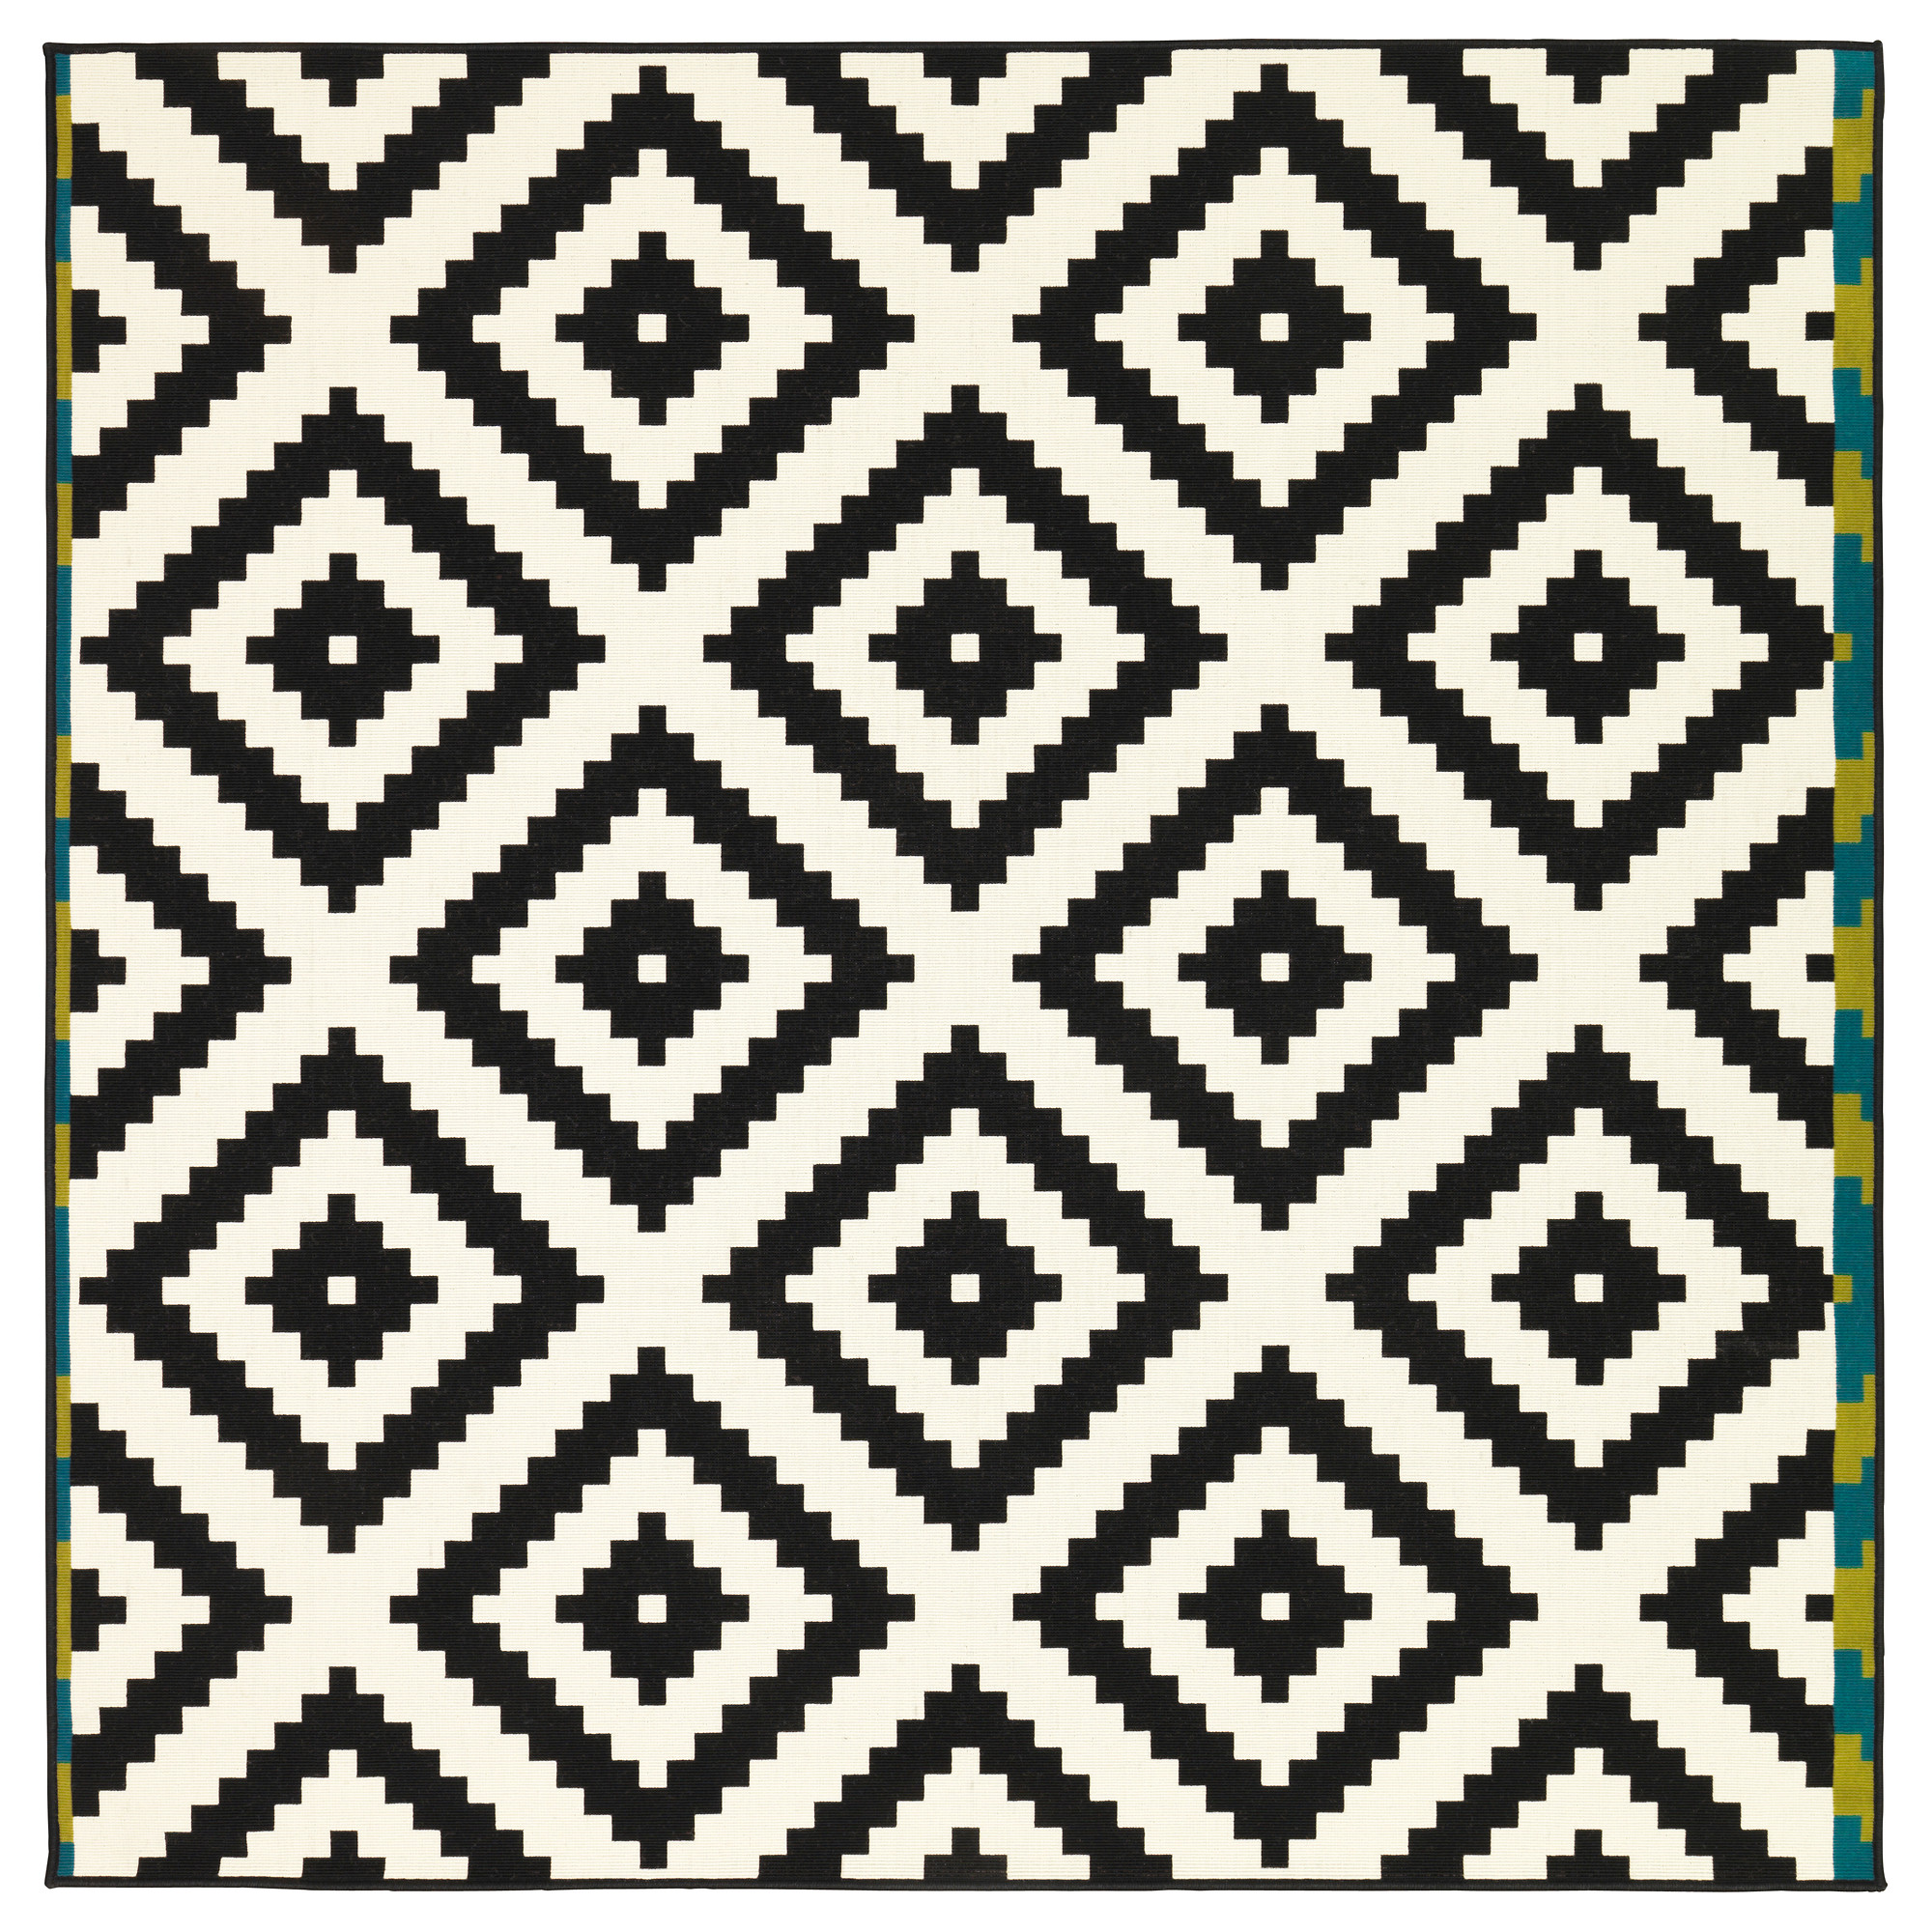 black and white rug lappljung ruta rug, low pile - 6 u0027 7  HRBAFNA